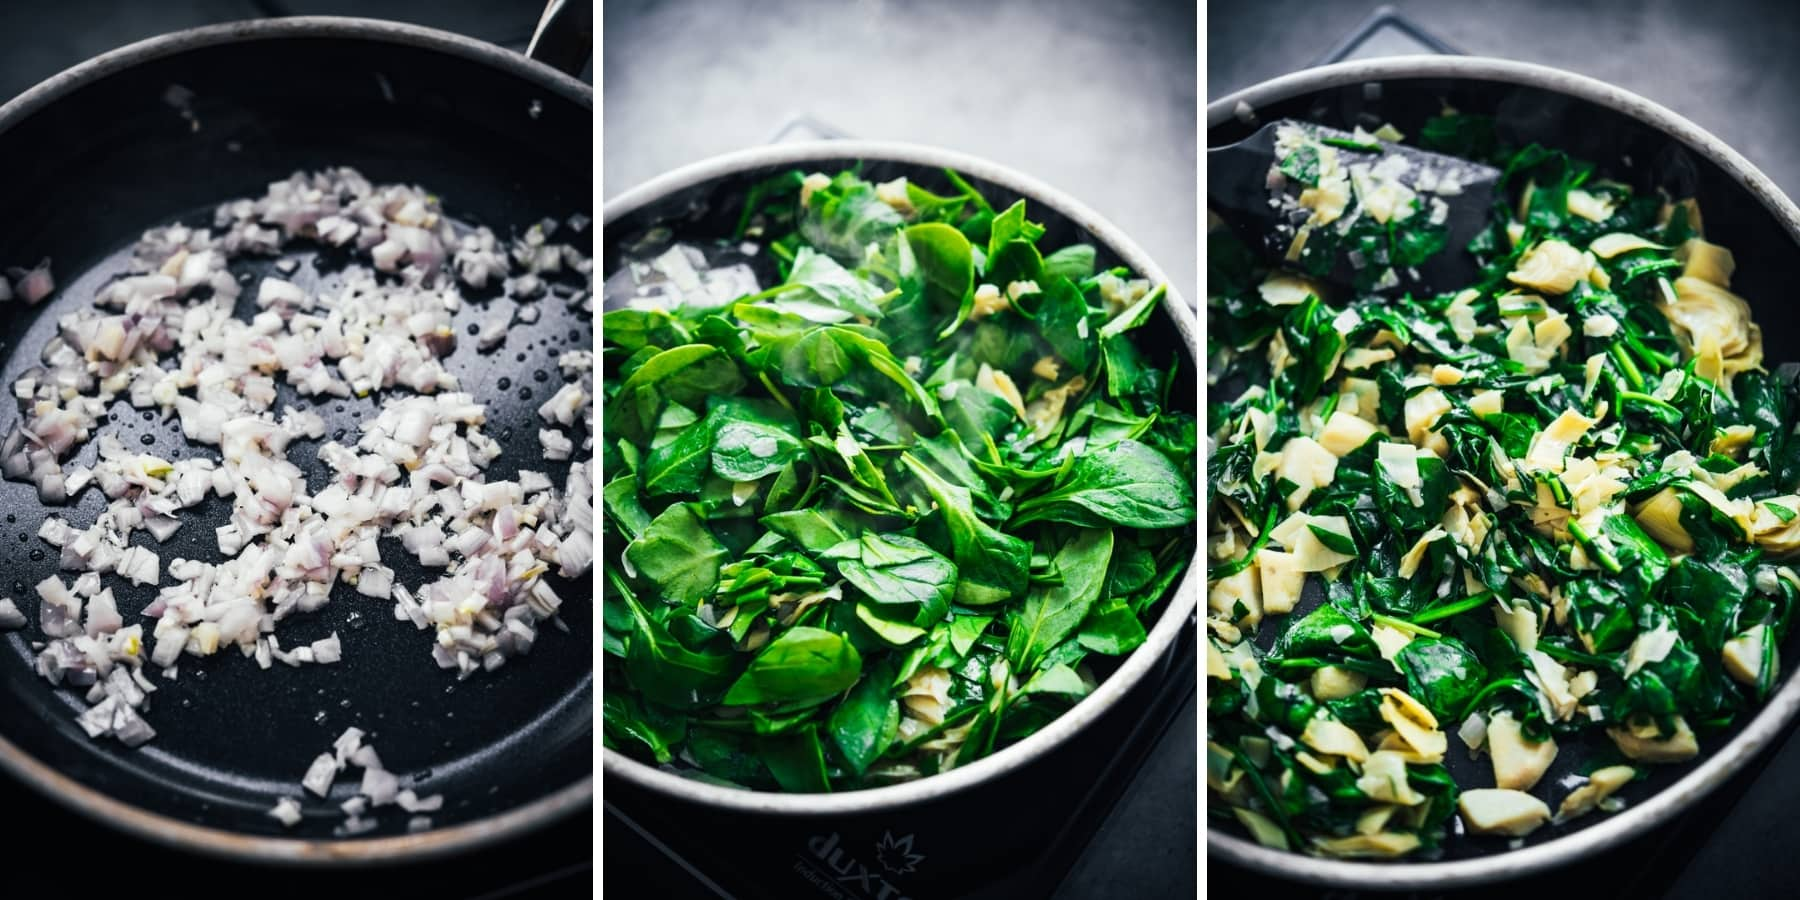 3 photo collage of sautéing shallots, artichokes and spinach in pan.